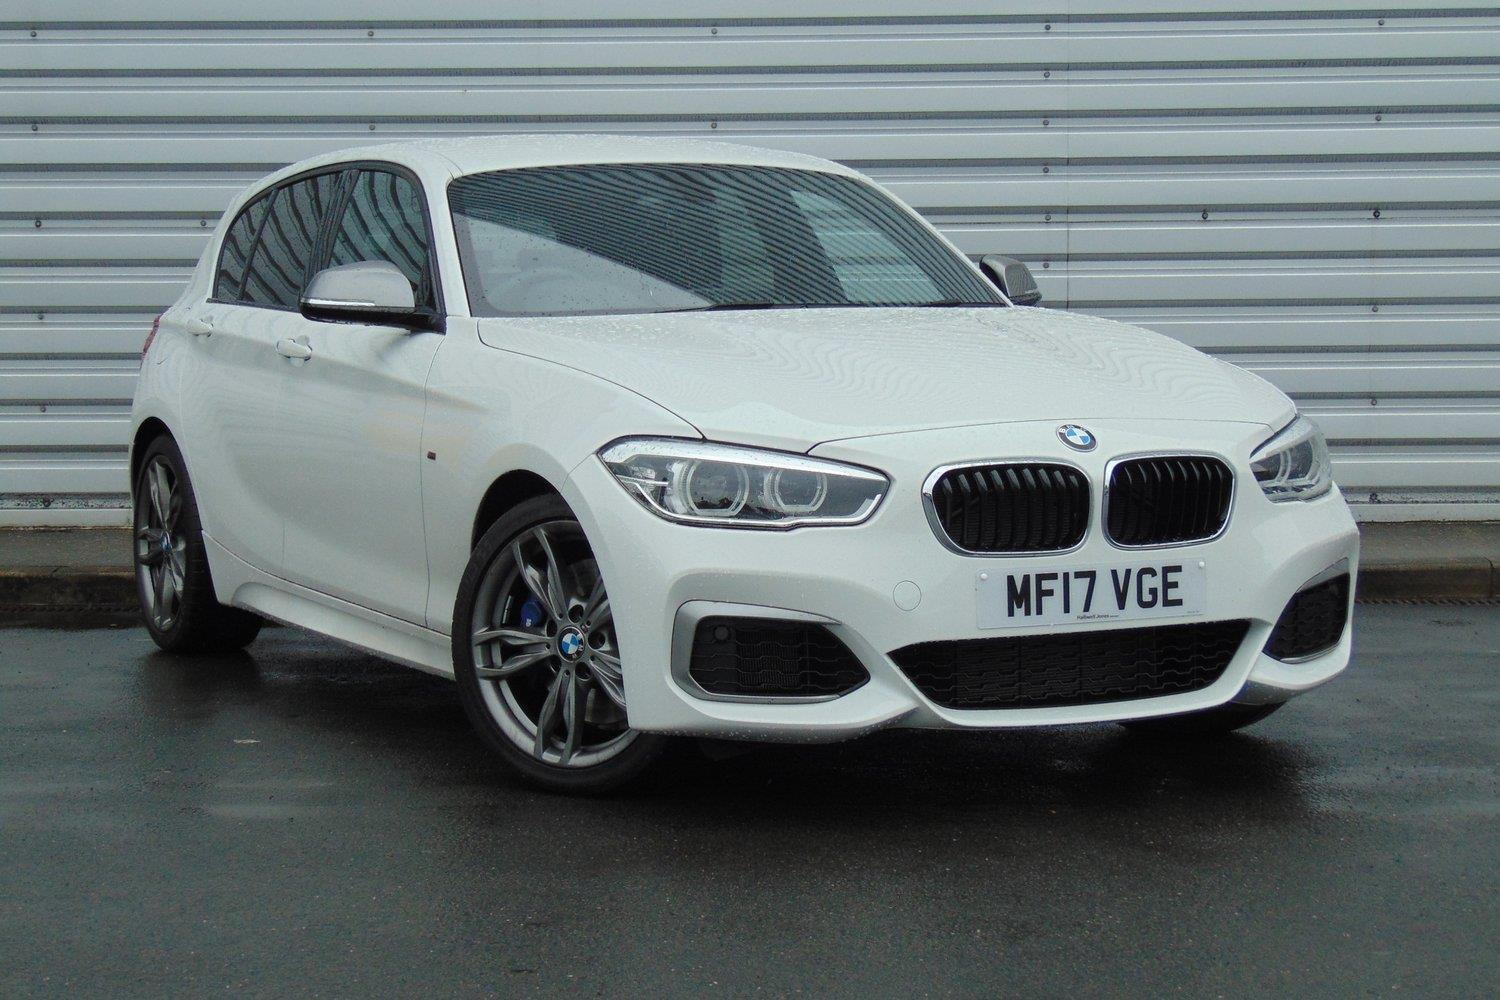 BMW 1 Series 5-door Sports Hatch MF17VGE - Image 7